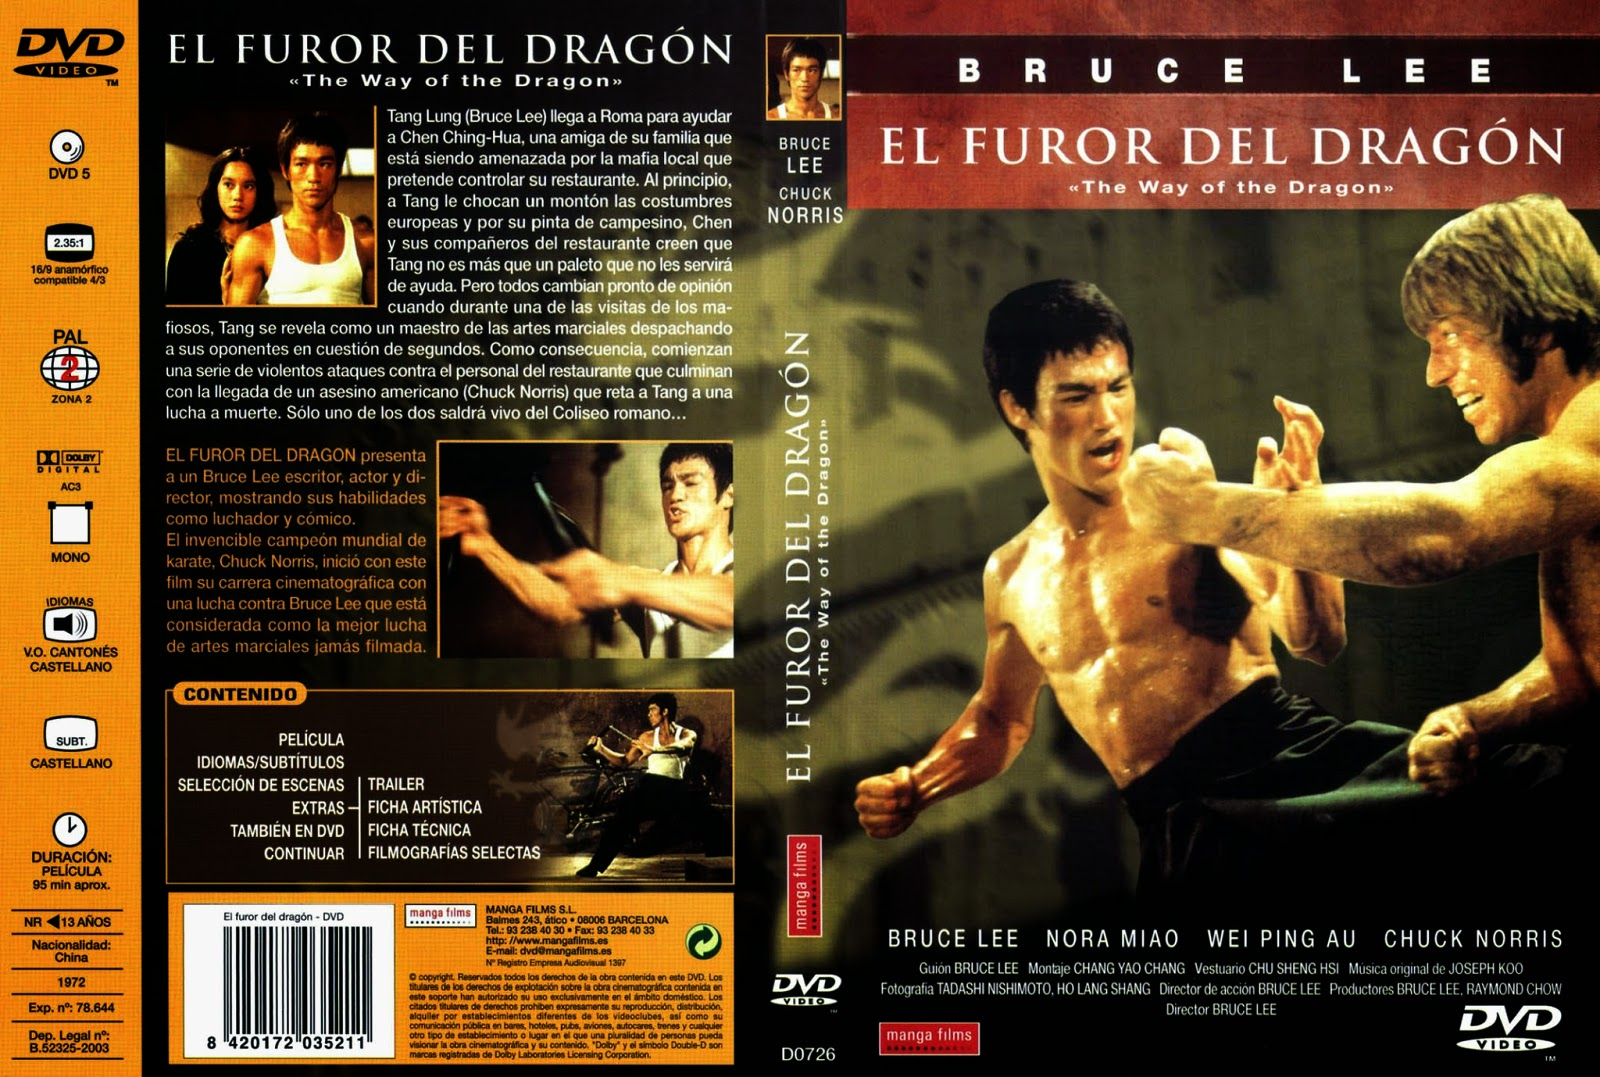 El Furor Del Dragon DVD